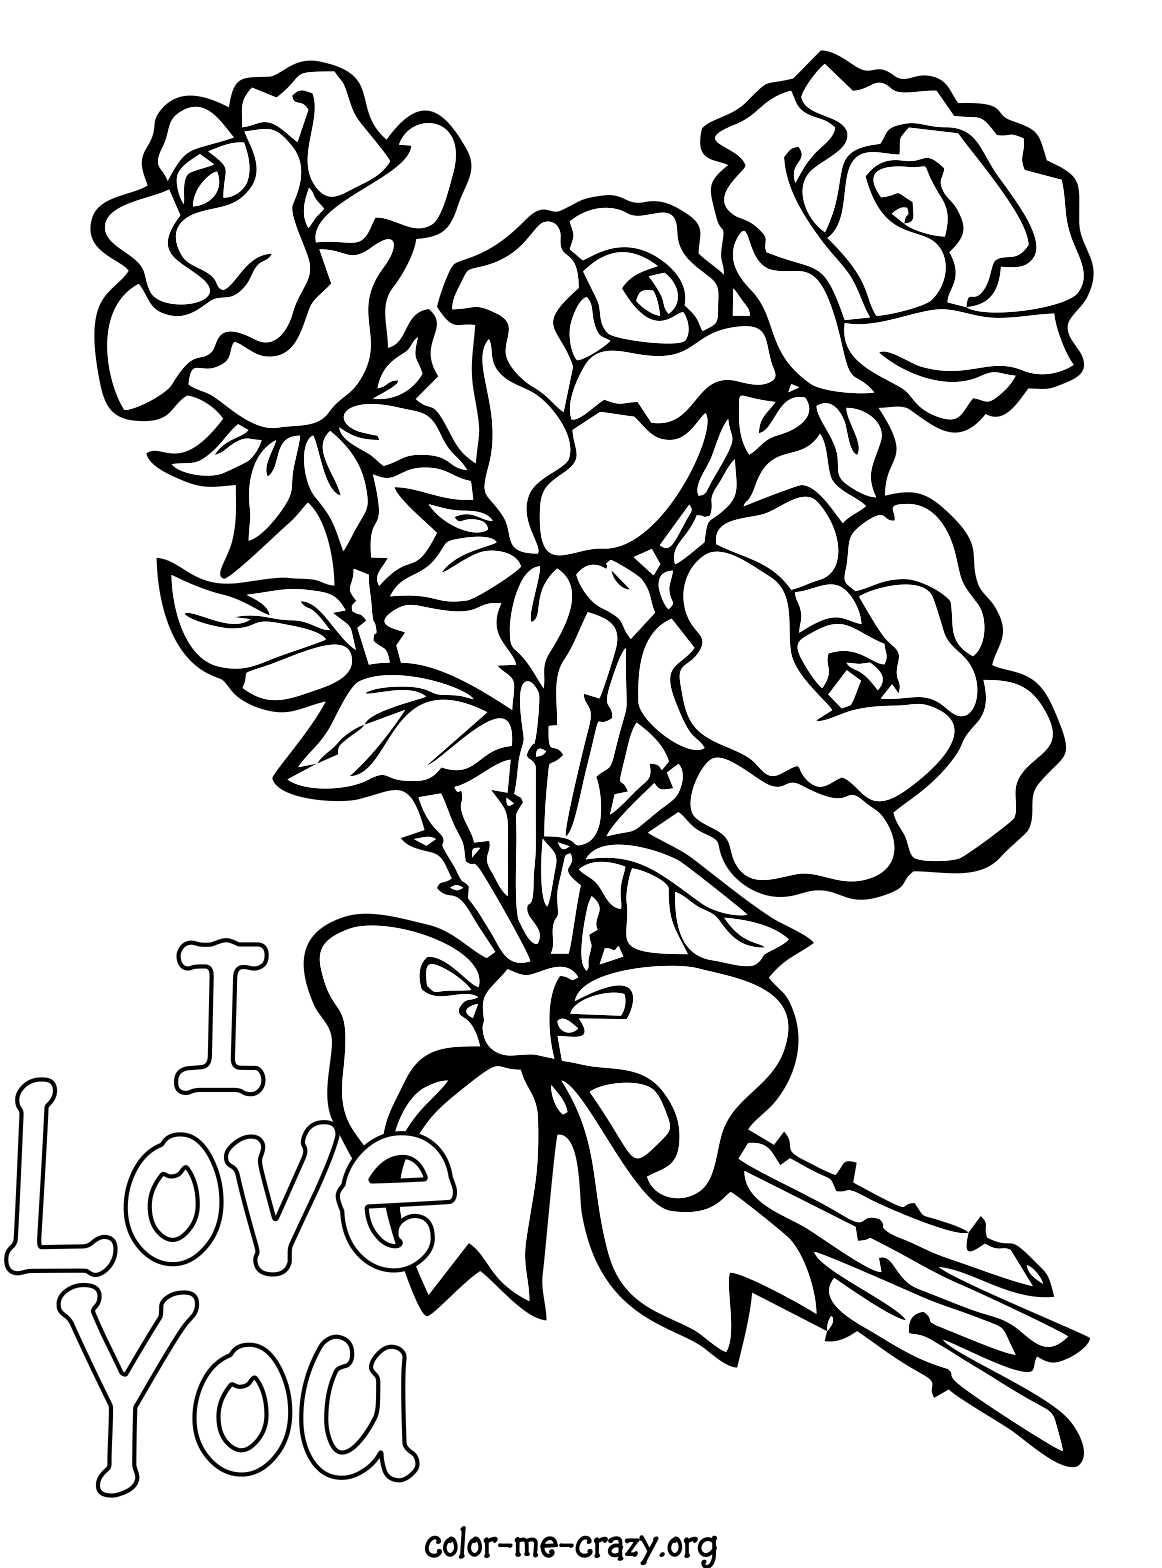 Simplicity image with printable valentine coloring pages